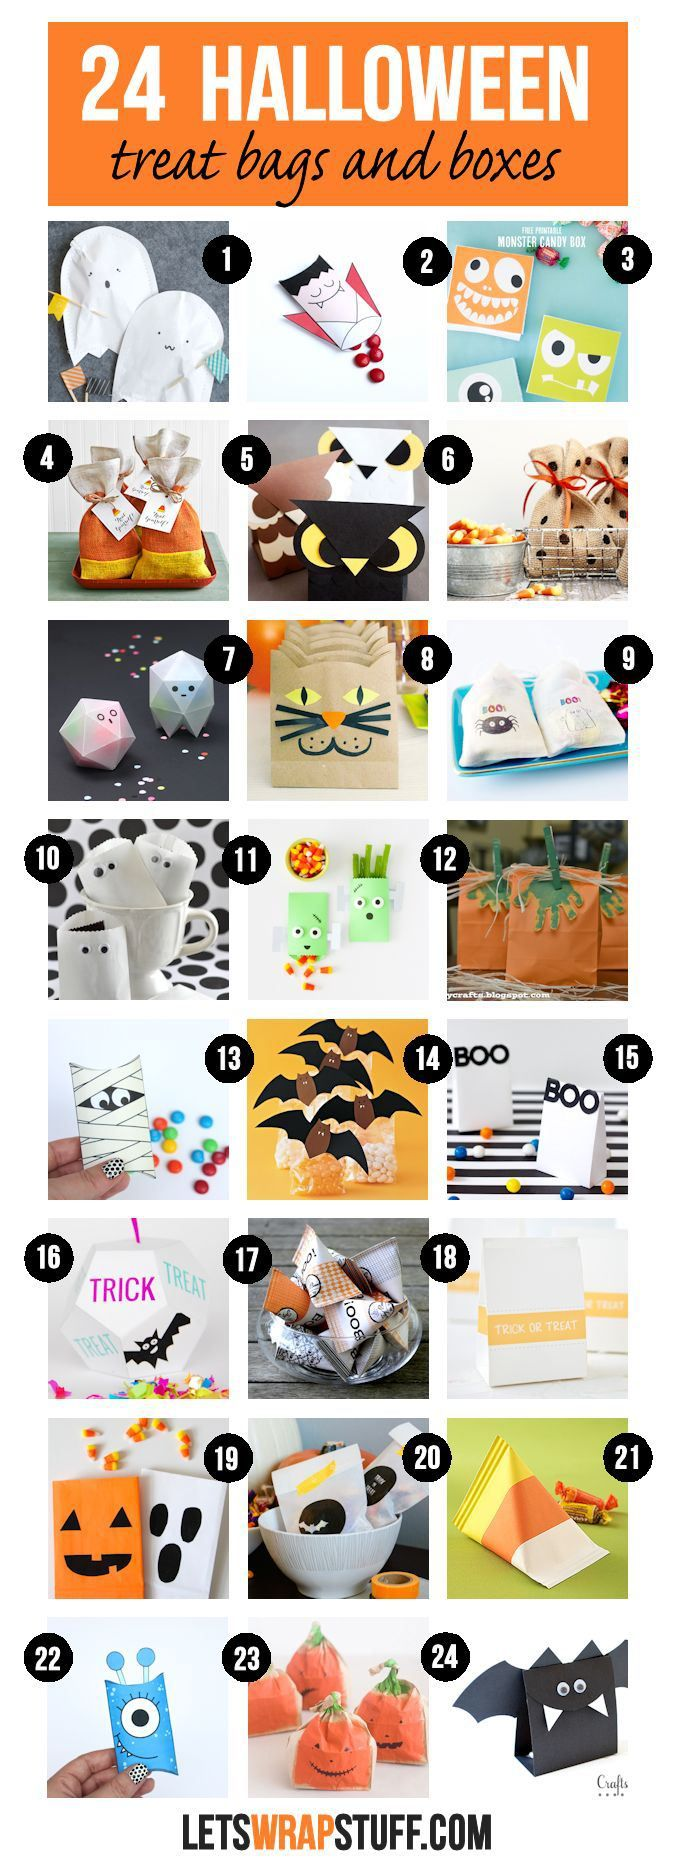 A collection of 24 Halloween treat bags and boxes... perfect to fill with candy and other treats and share as Halloween party favors.